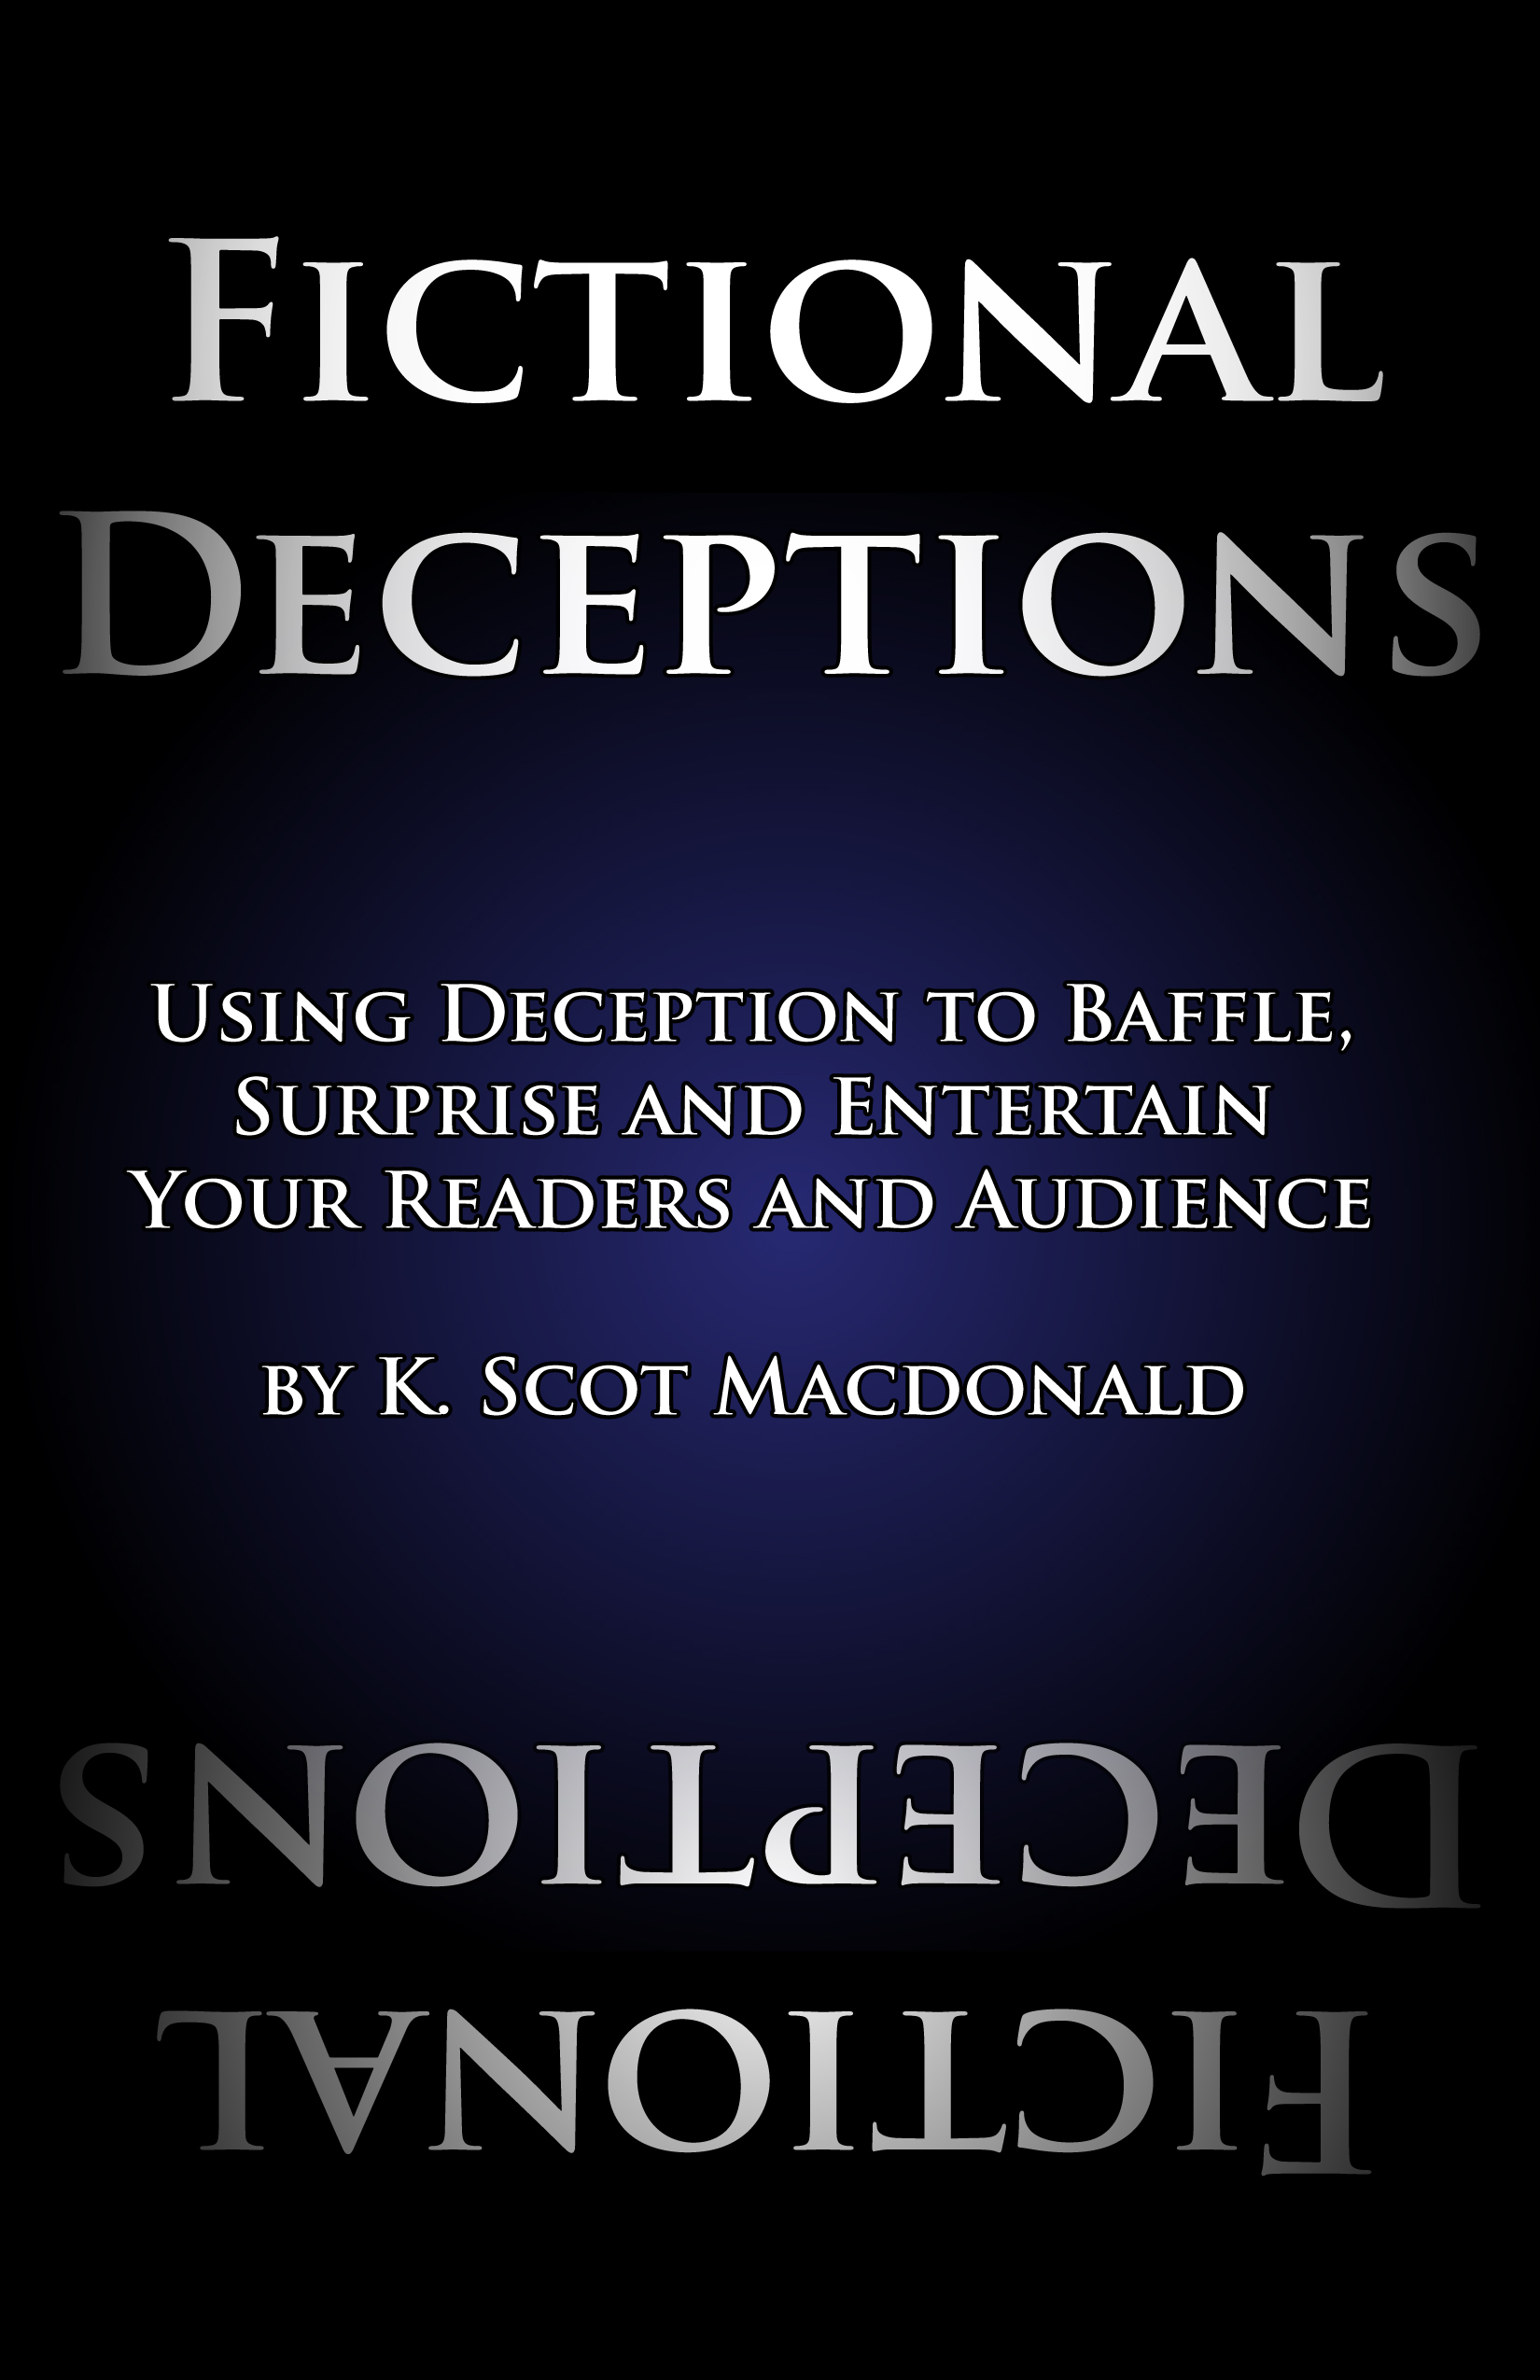 MysteriousDeceptionscover8justcover